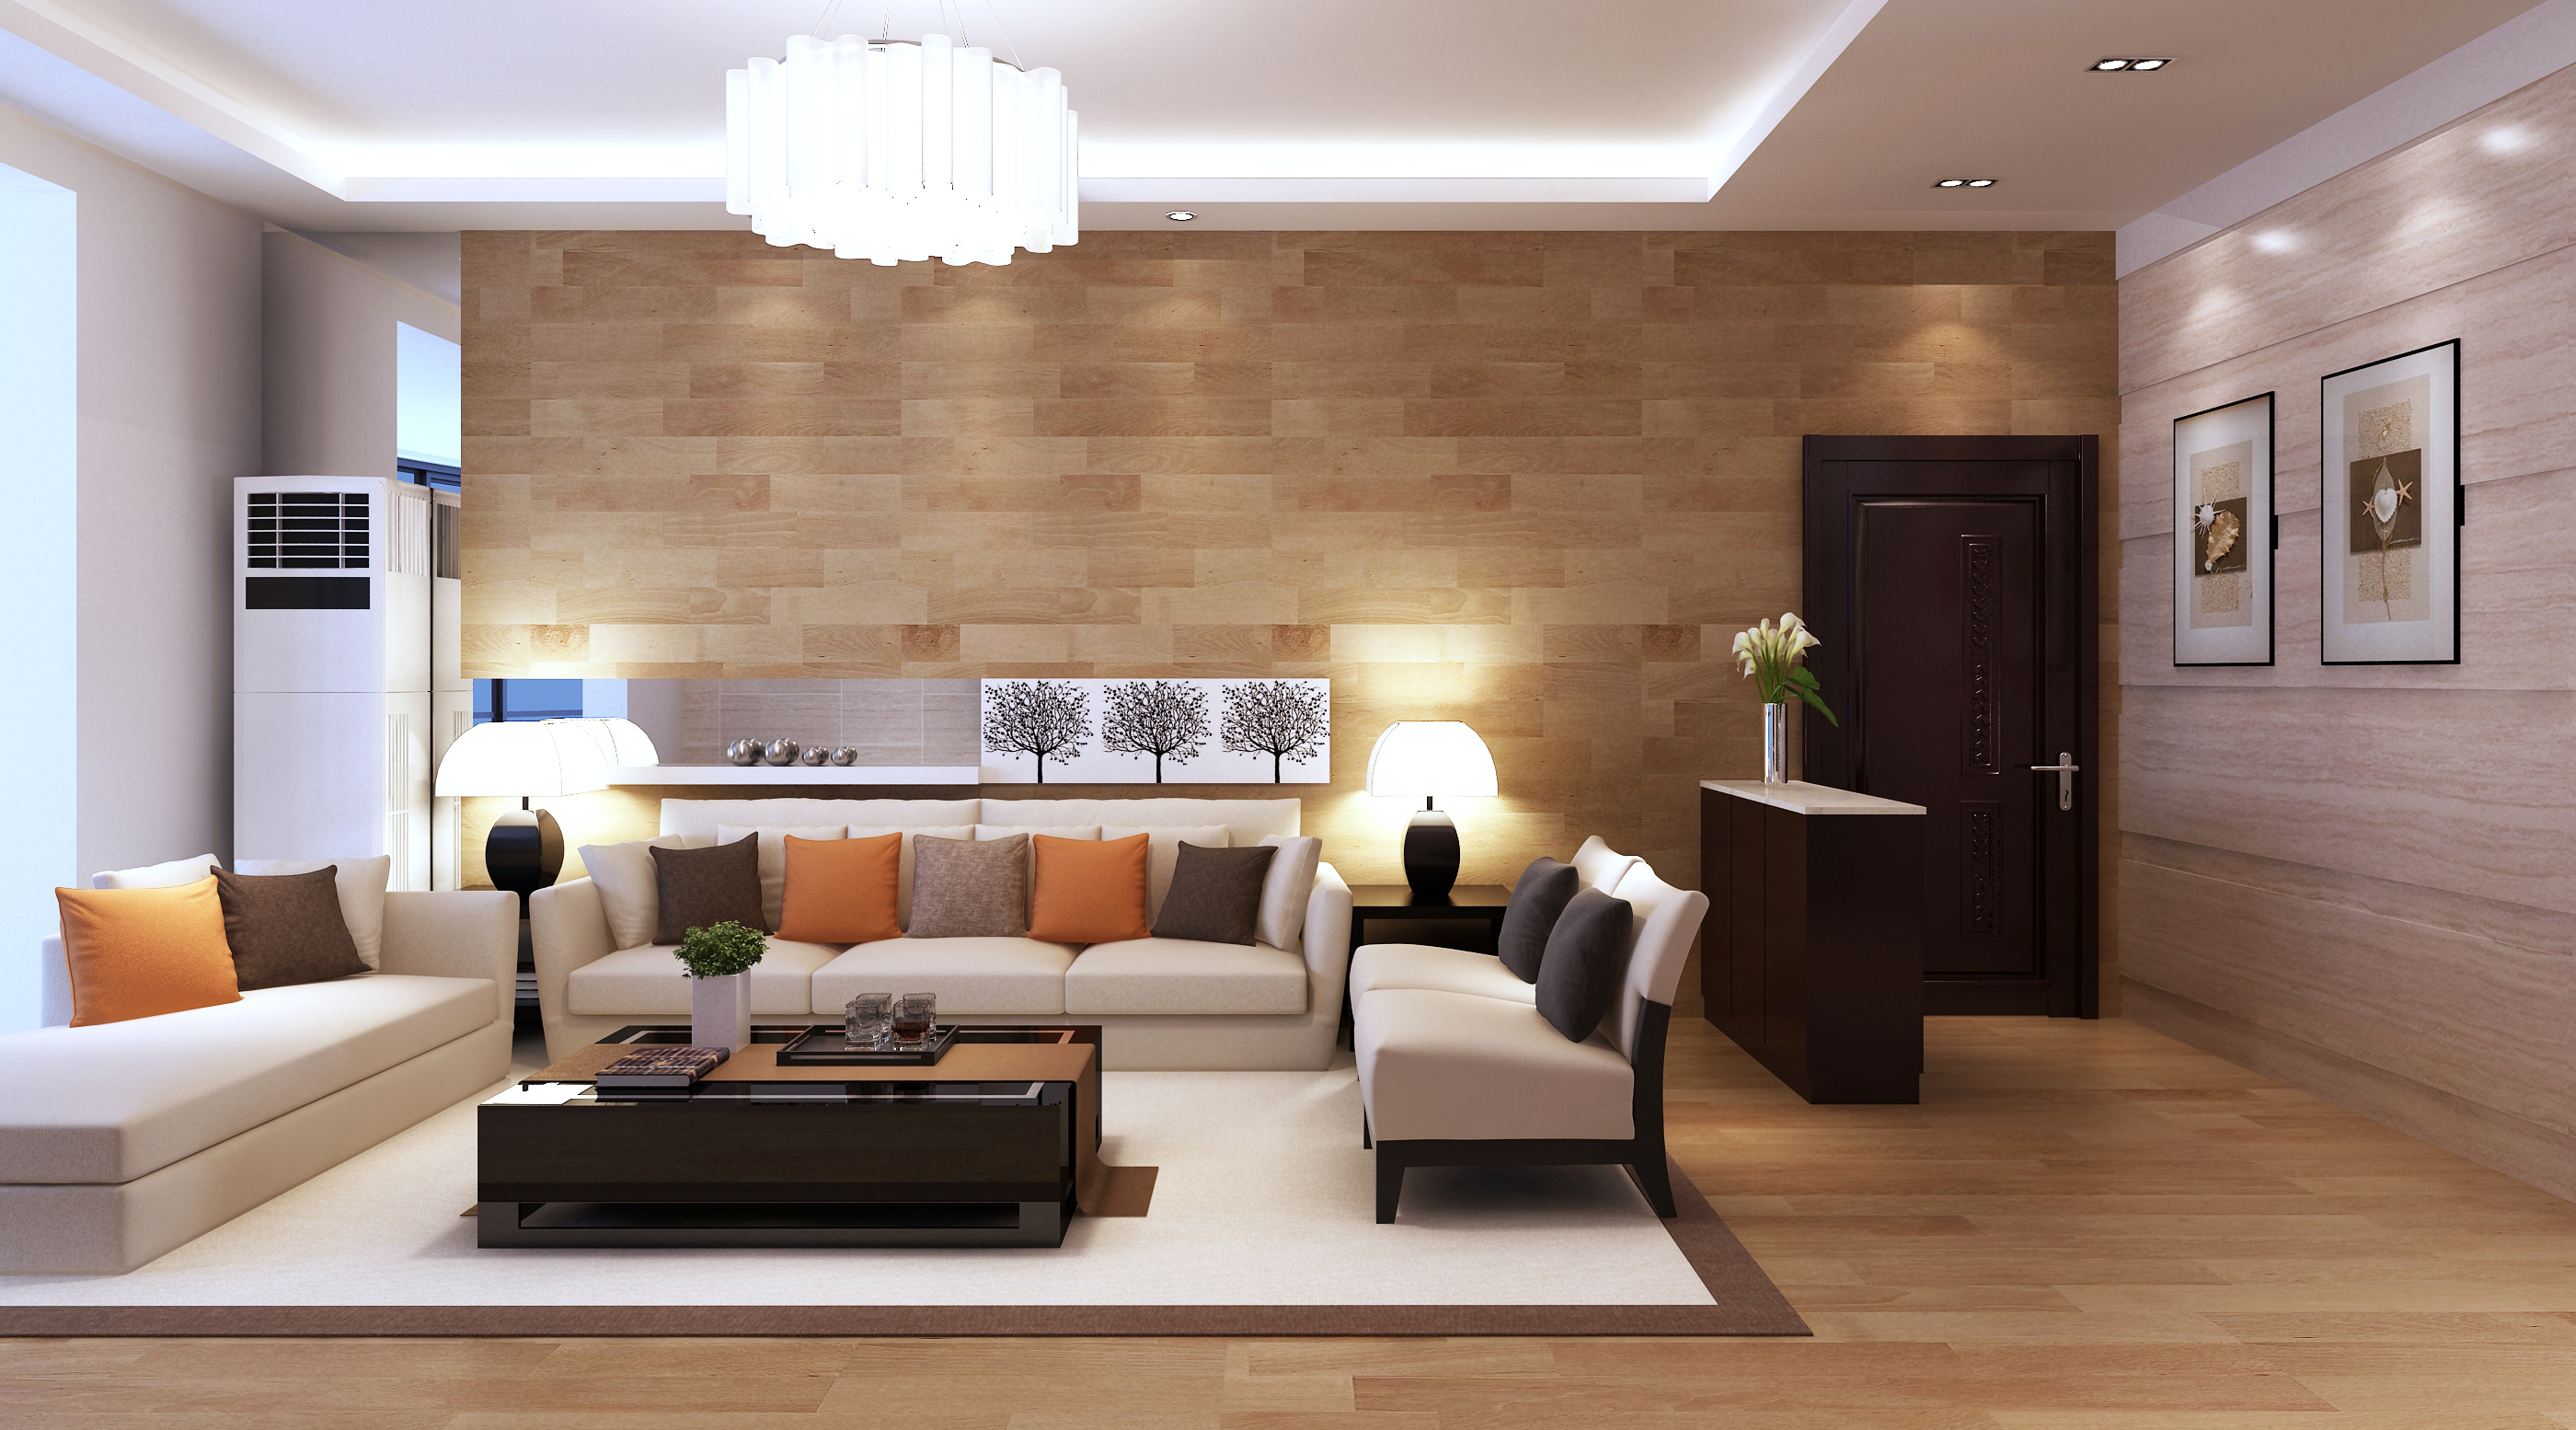 Living Room Model Brilliant 3D Model Modern Living Room Architectural  Cgtrader Design Decoration